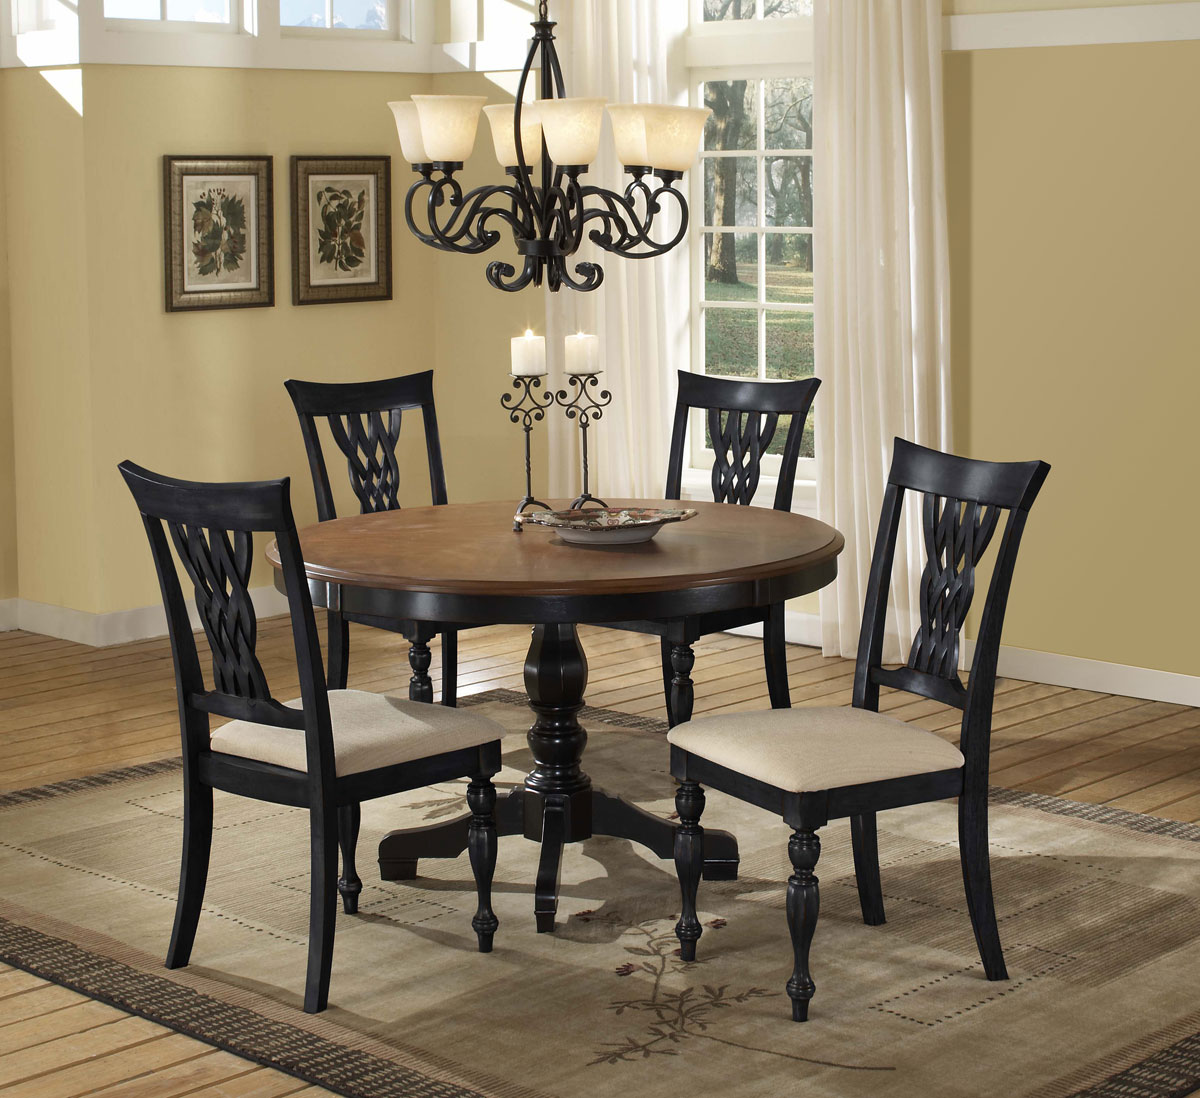 Hilale Emby Round Pedestal Dining Table Rubbed Black Cherry